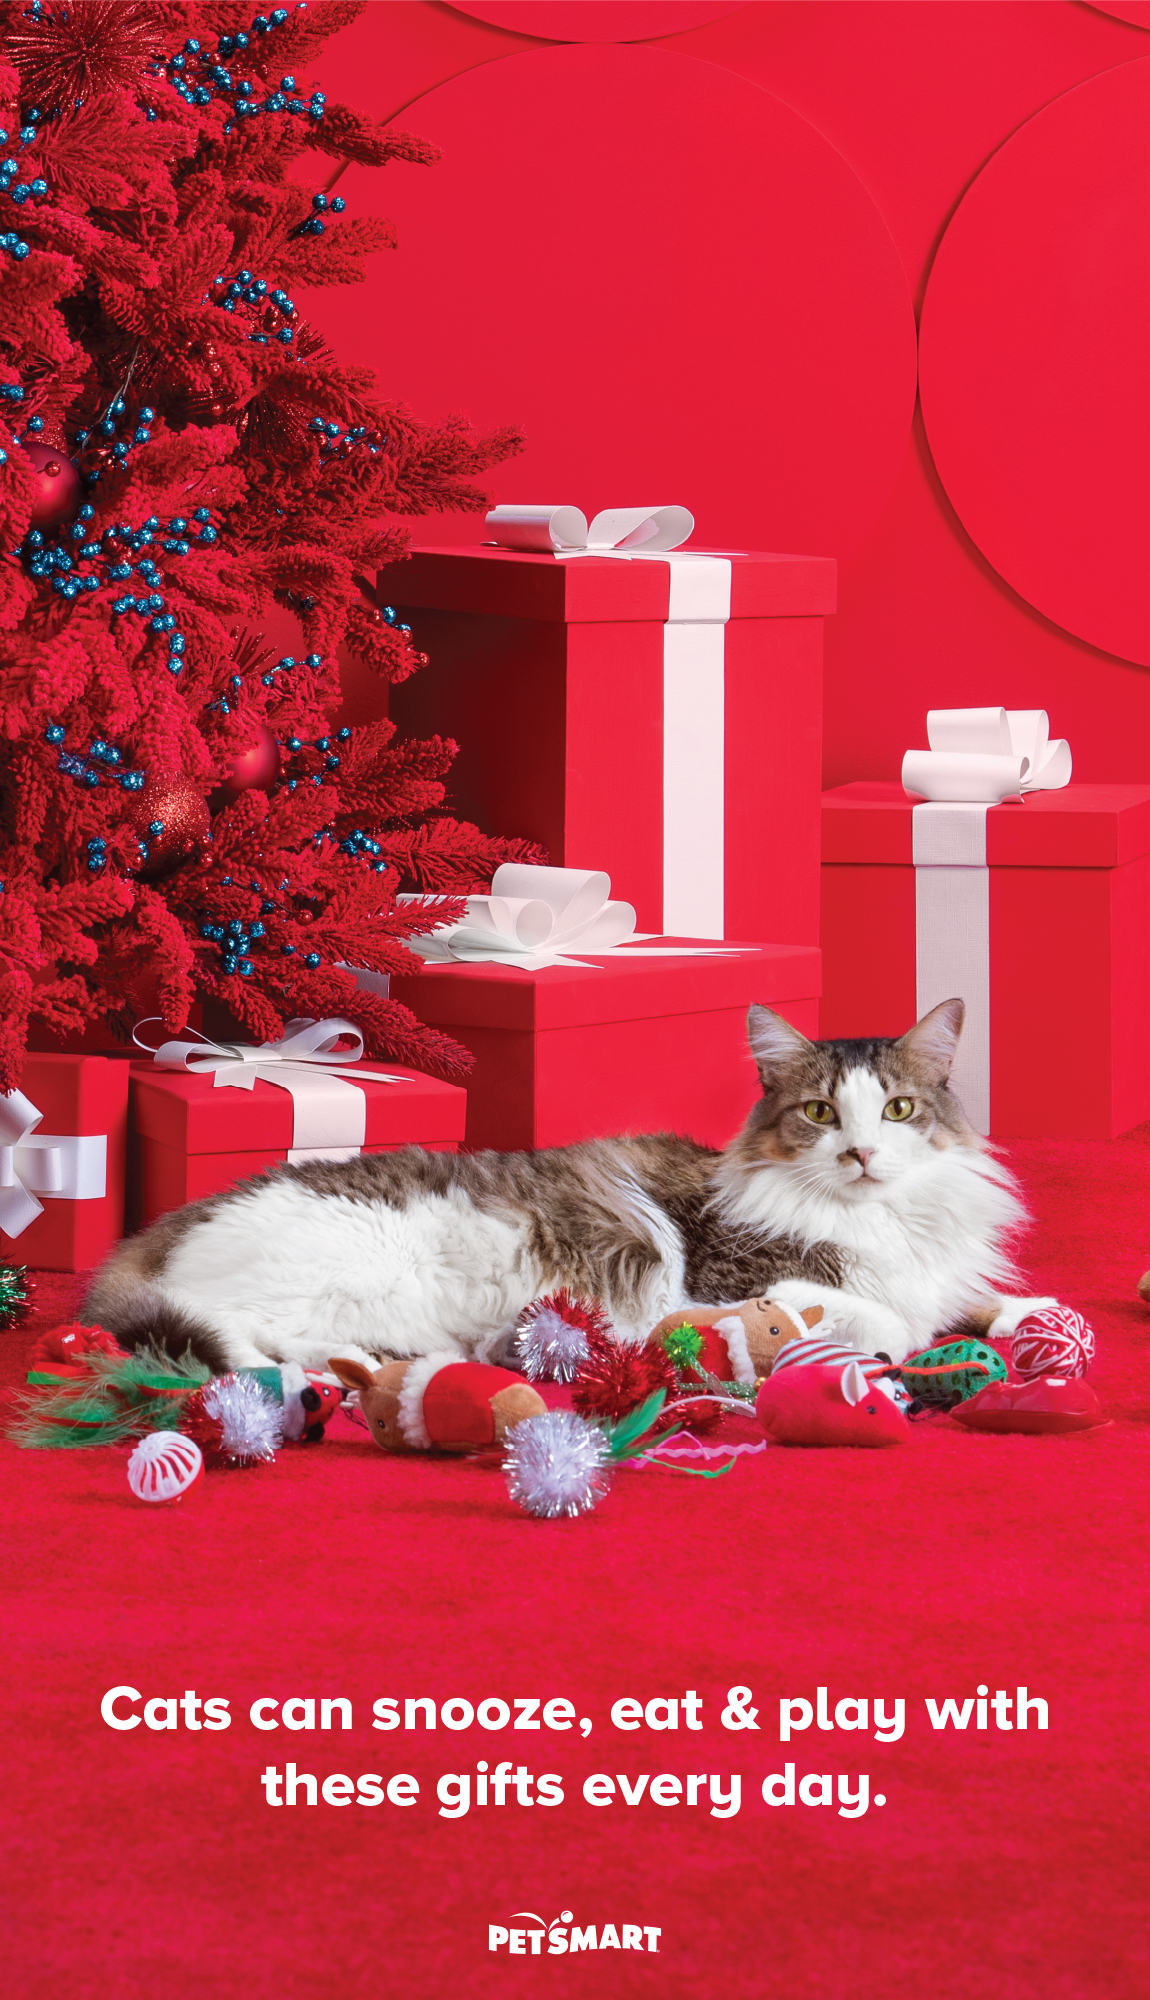 Cats can snooze, eat & play with these gifts every day.